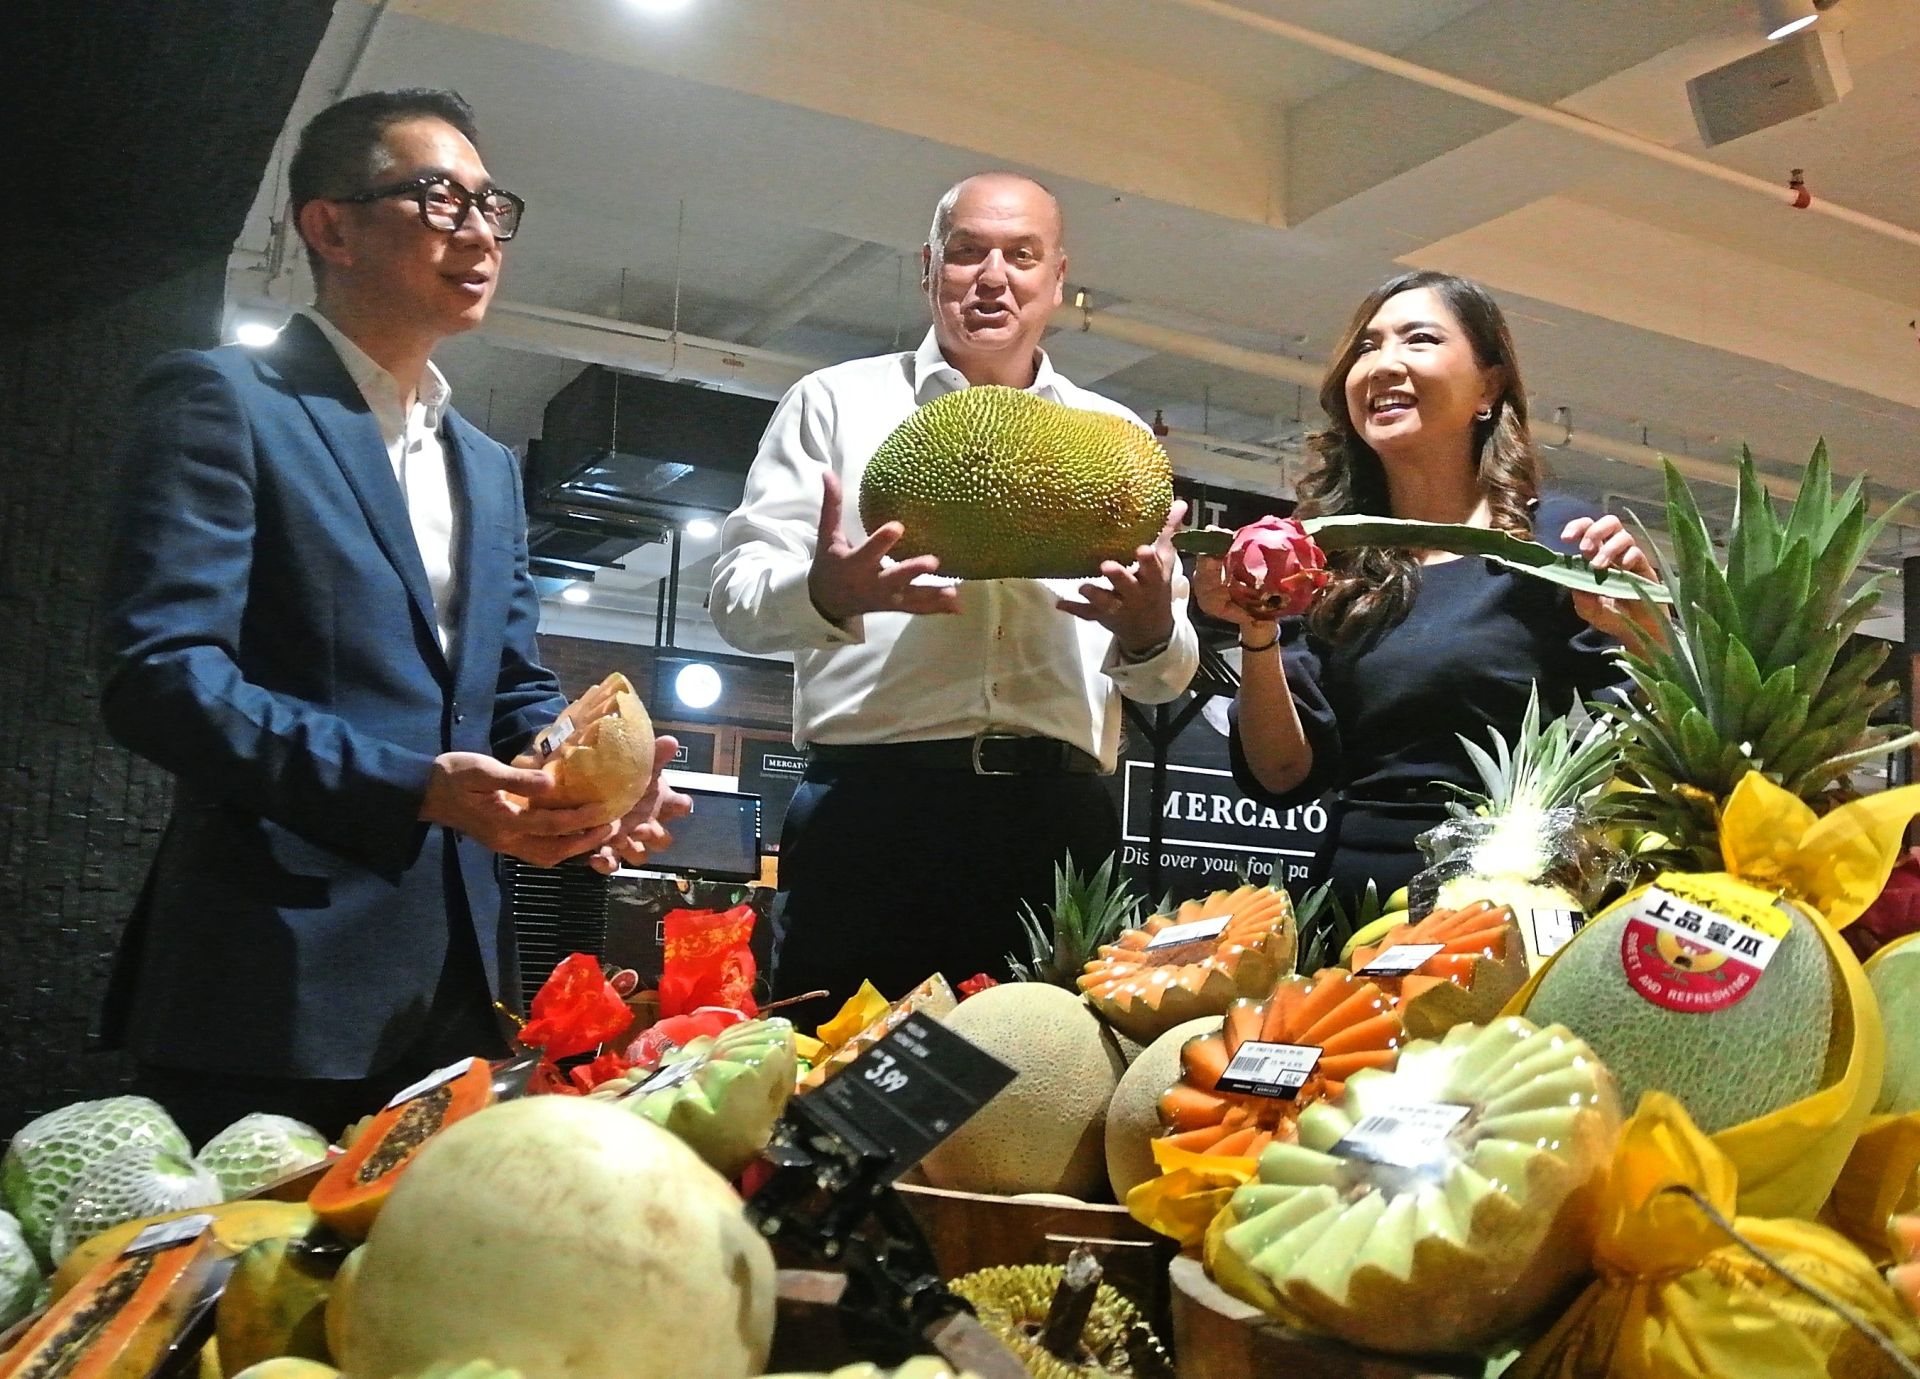 (From left) Chan, Scates and Ng checking out the fruits during Mercato's opening in Gurney Plaza, George Town.